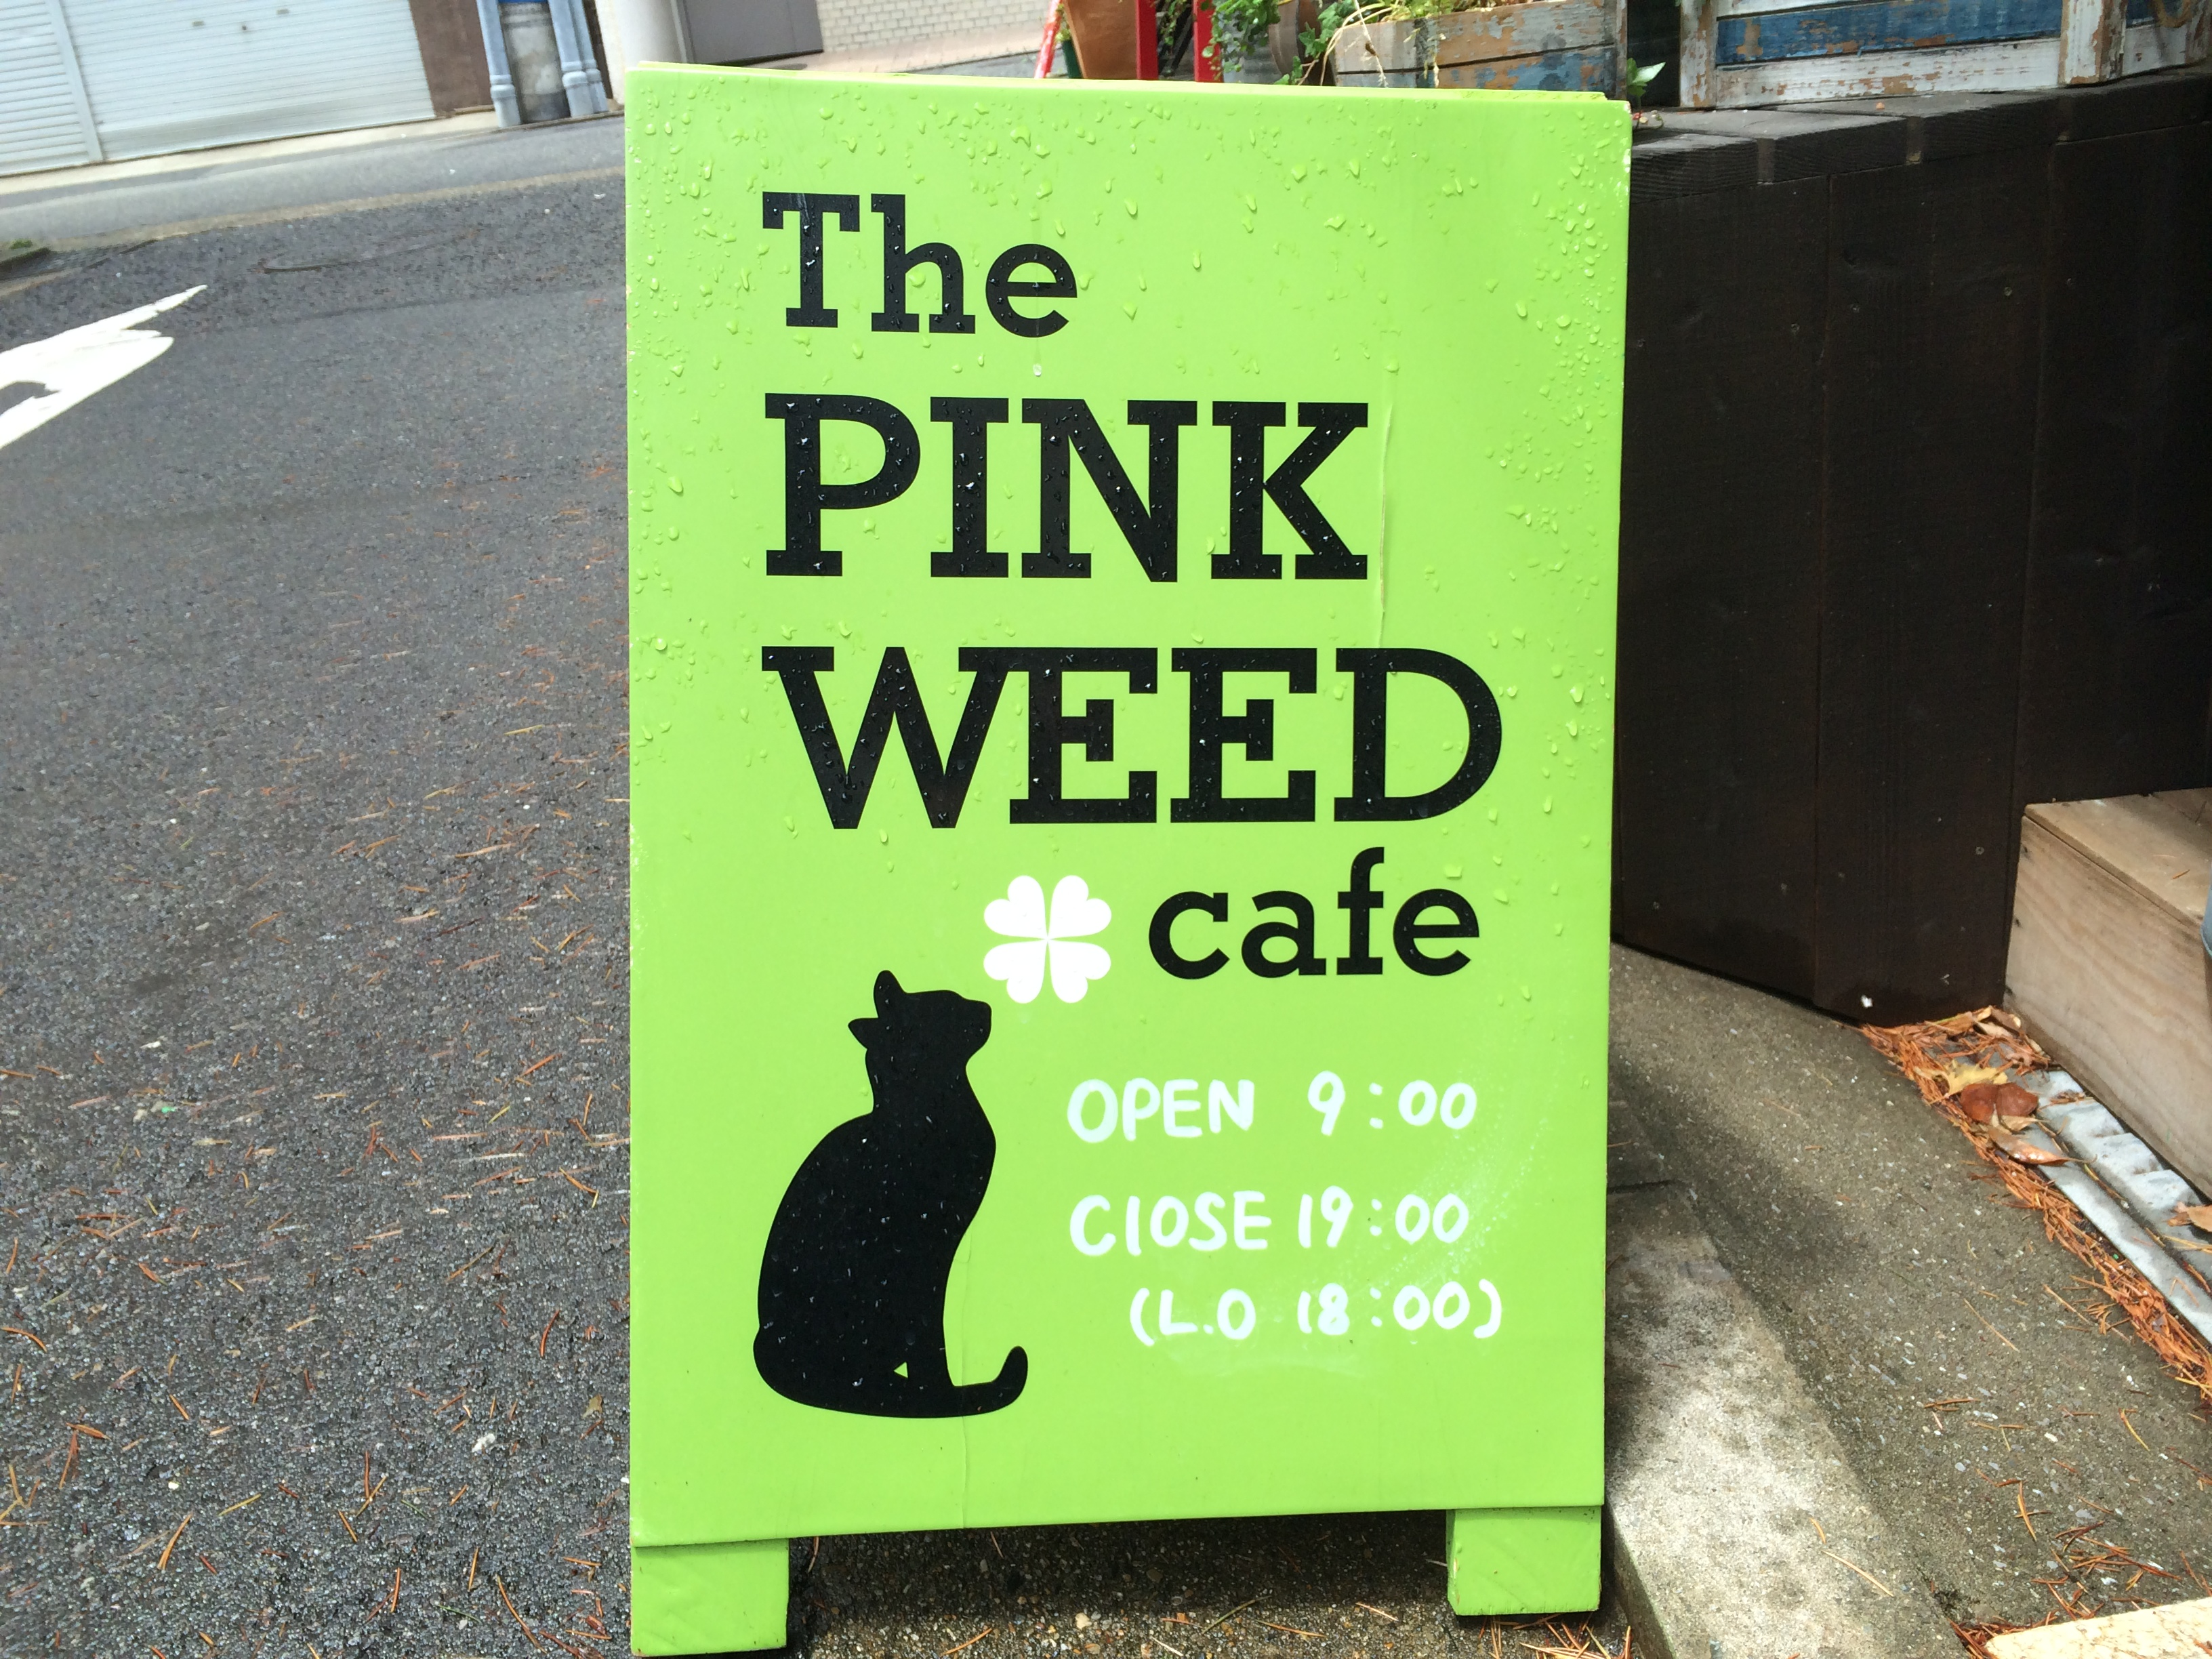 the pink weed cafe看板